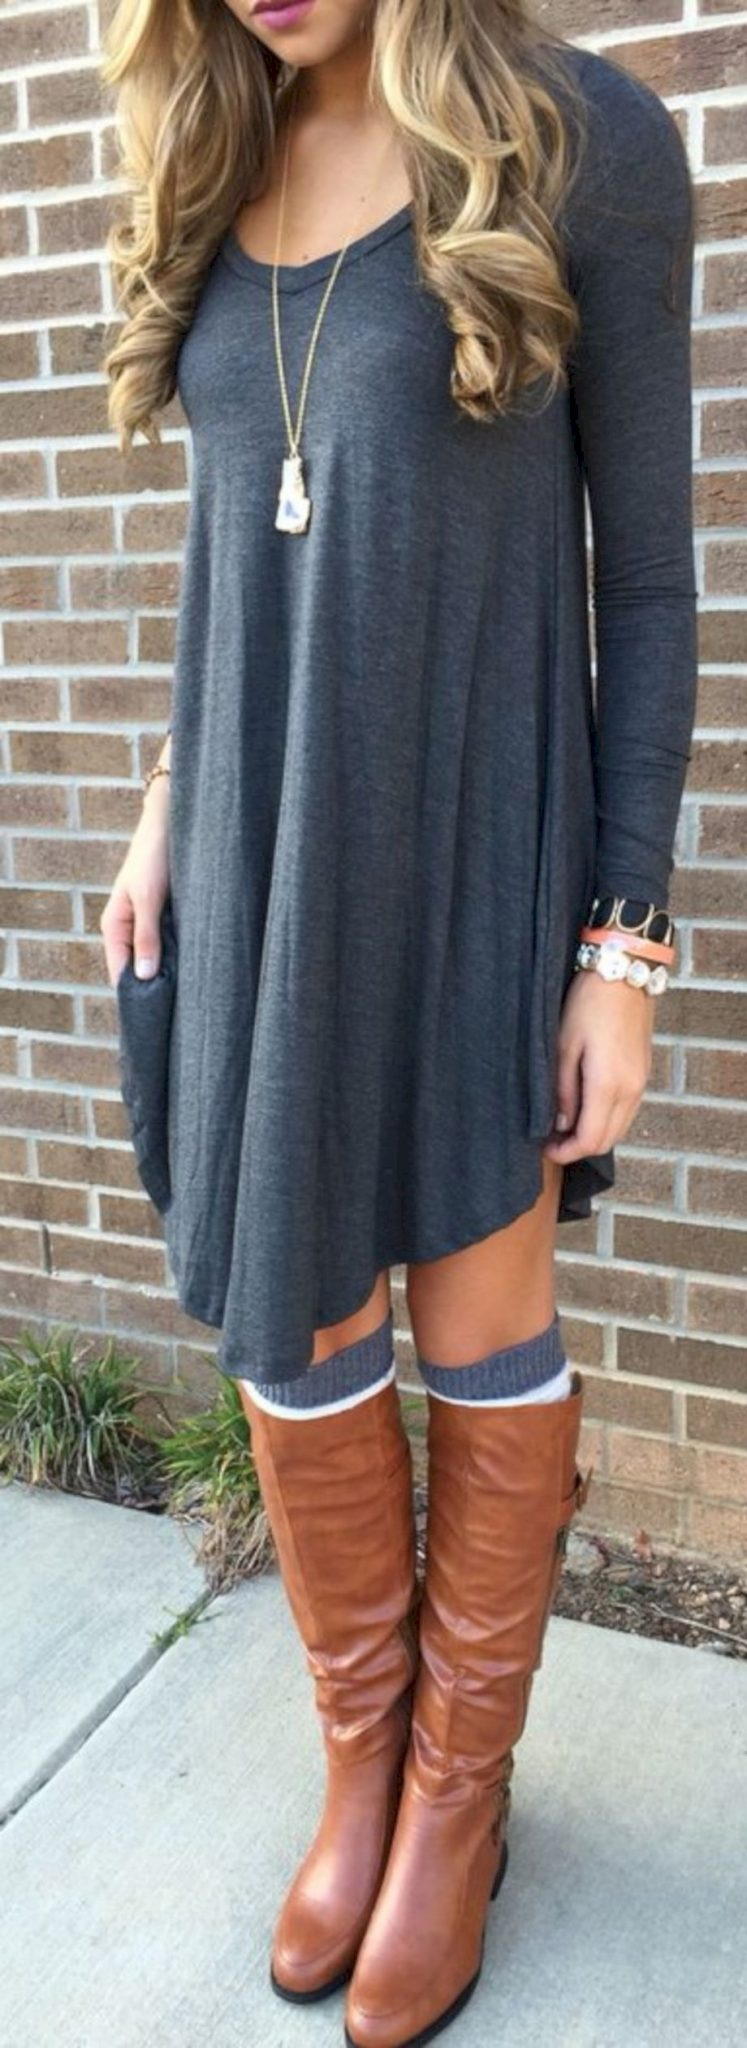 Outfits with leggings 15